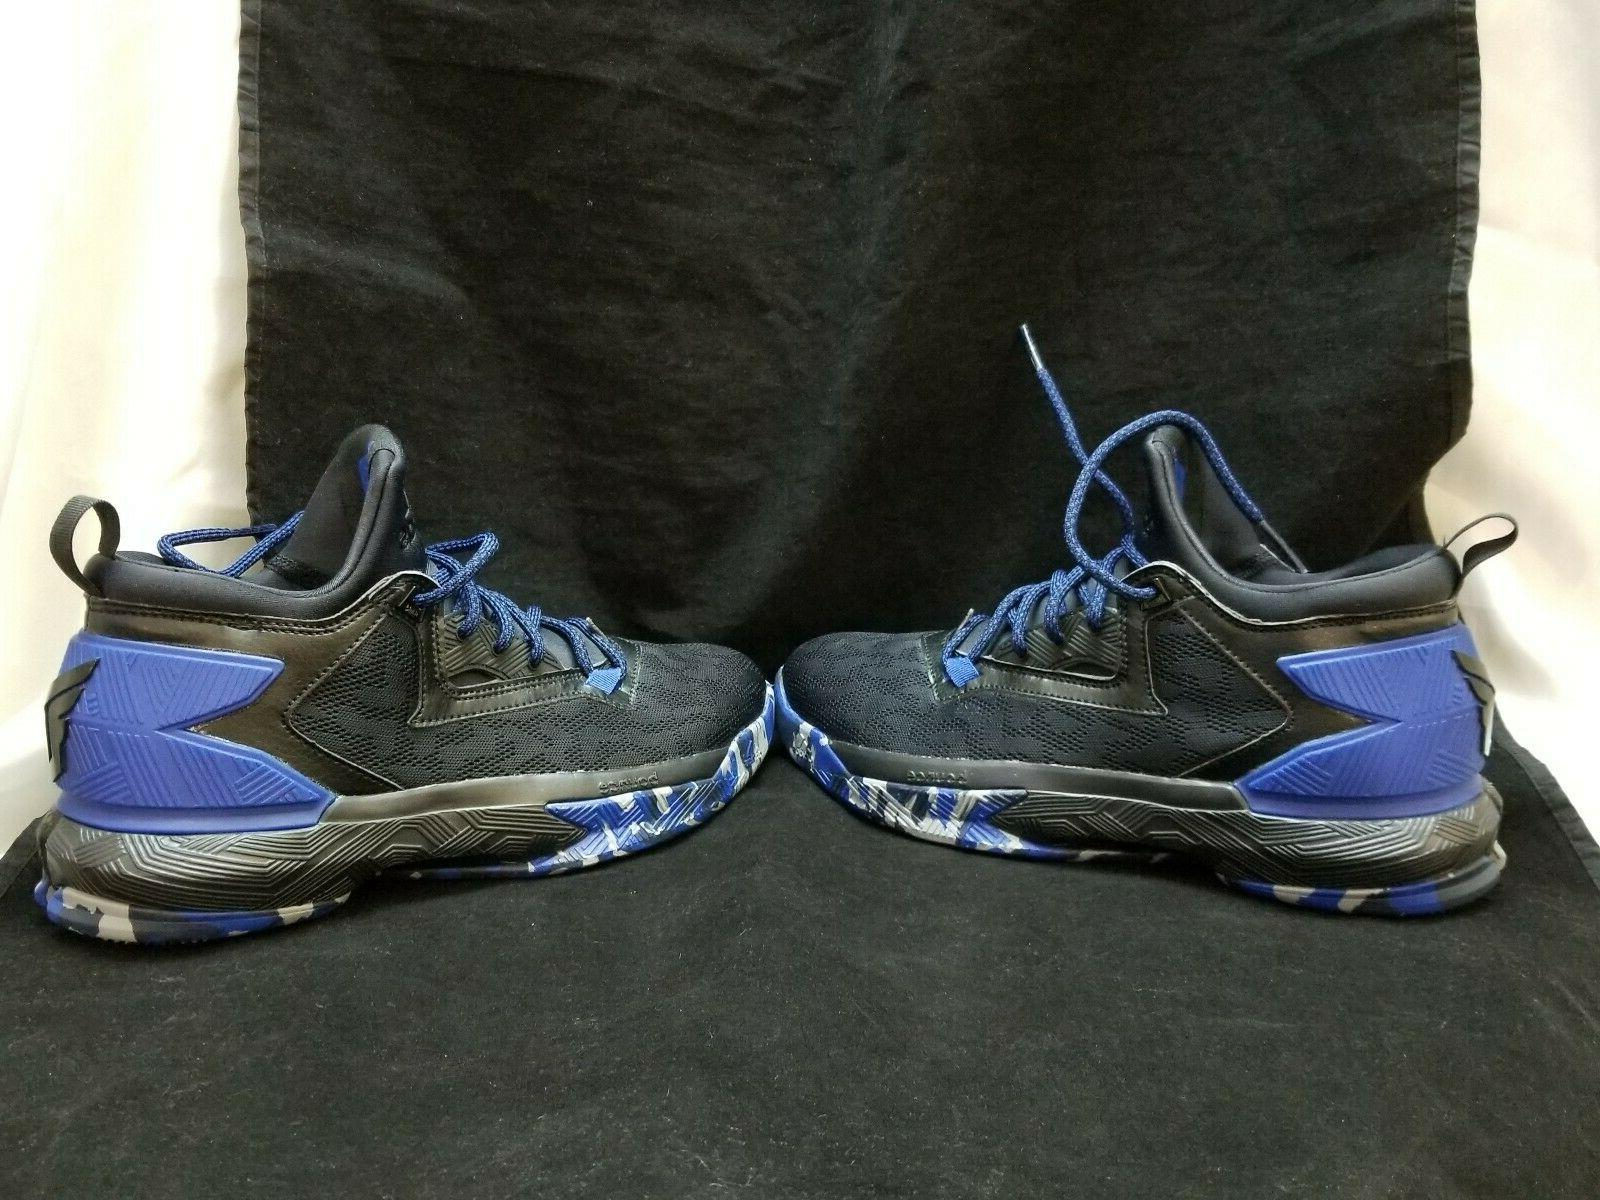 NEW Adidas Stable Blue Camo Size